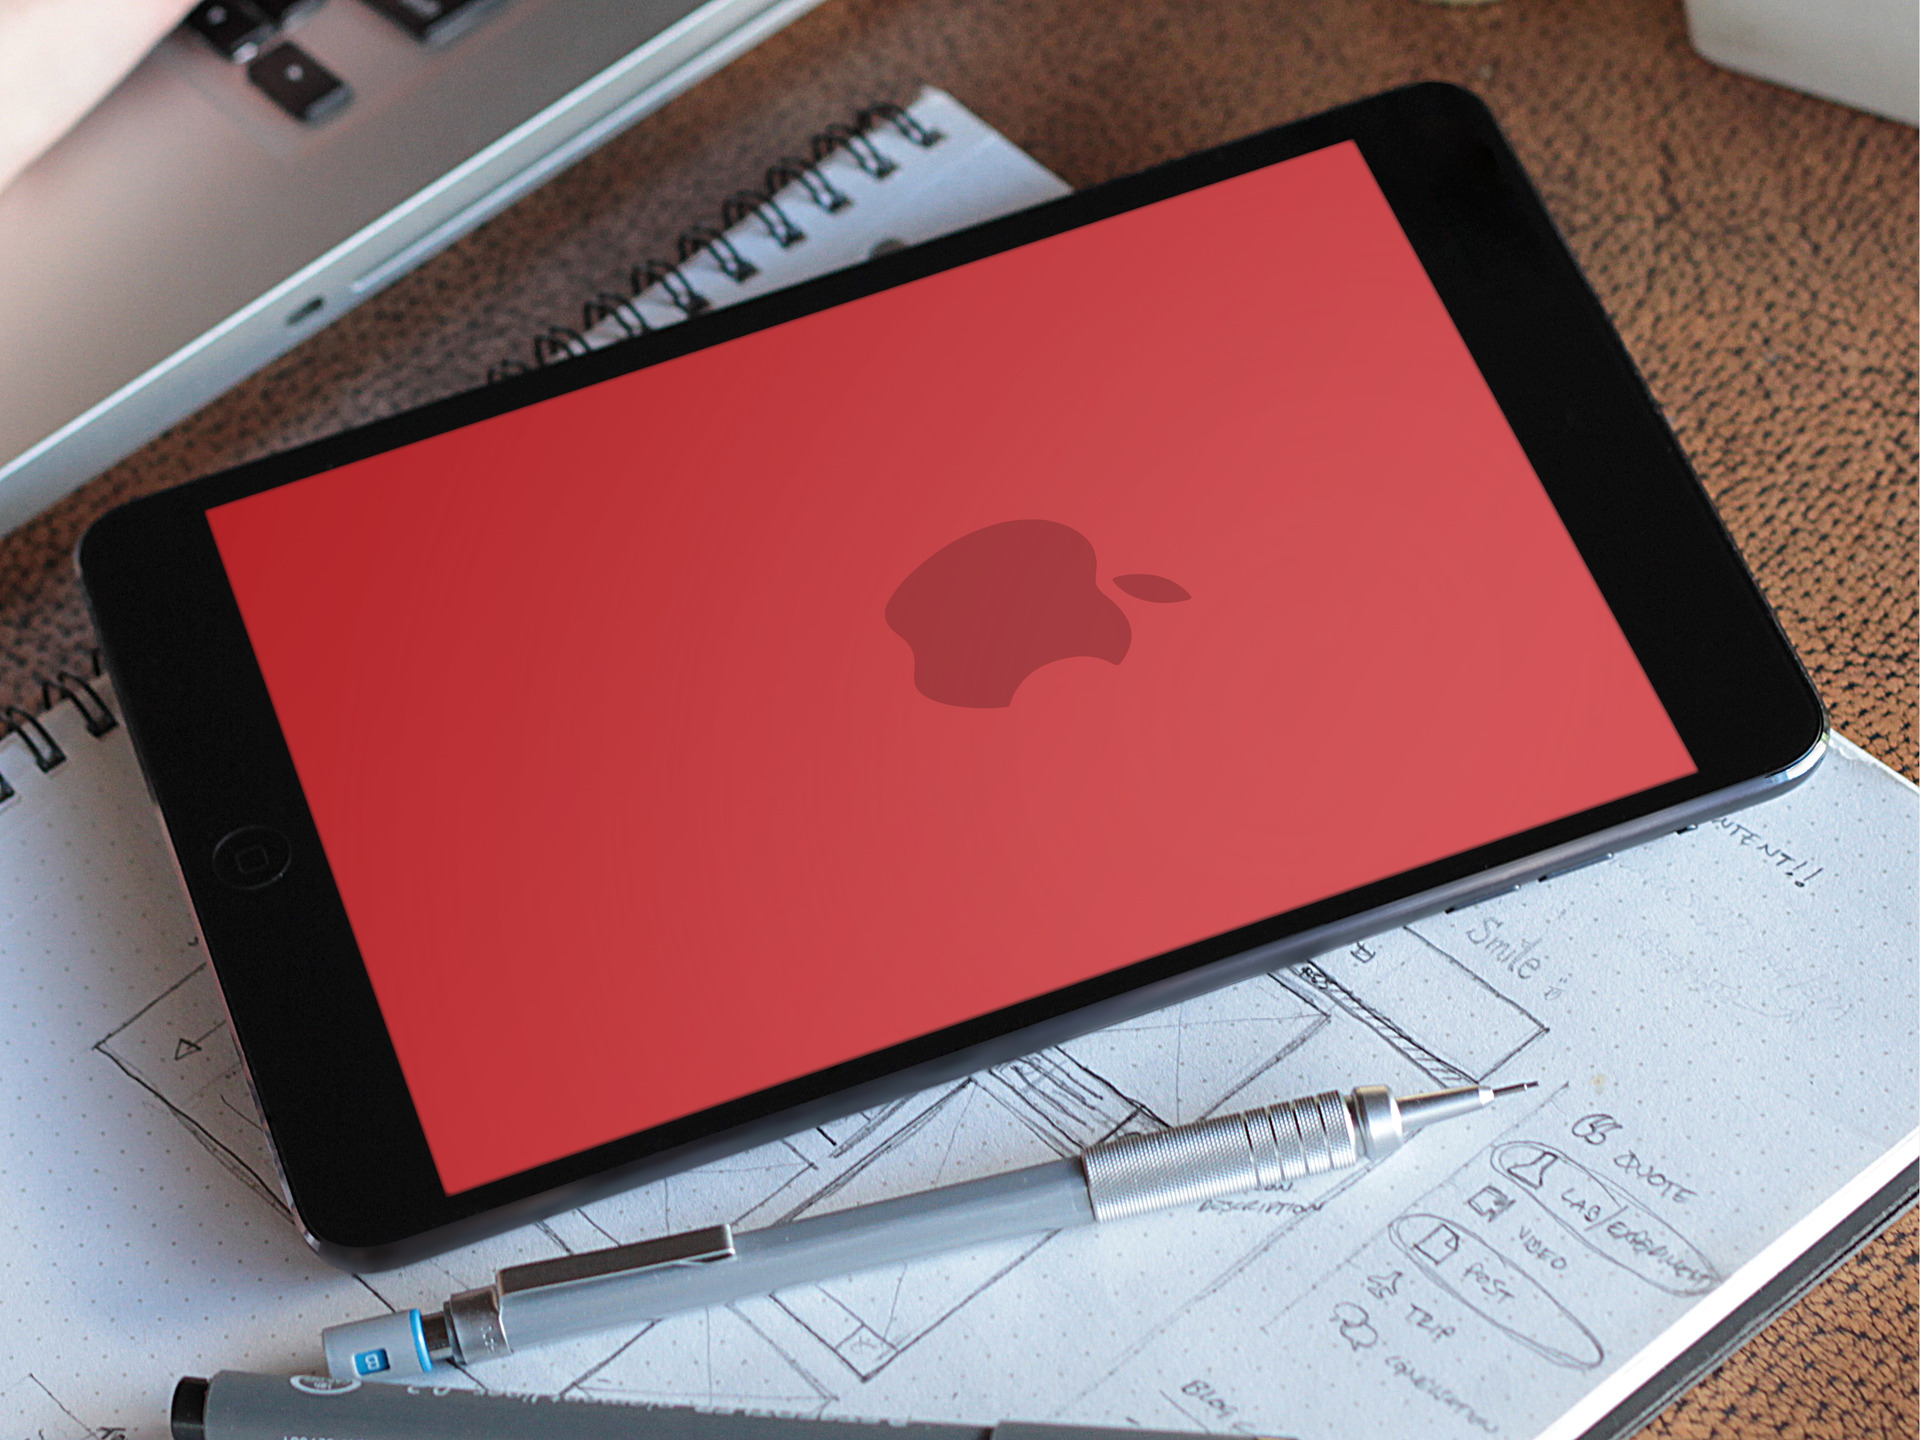 Apple RED Product Wallpaper Splash Axinen